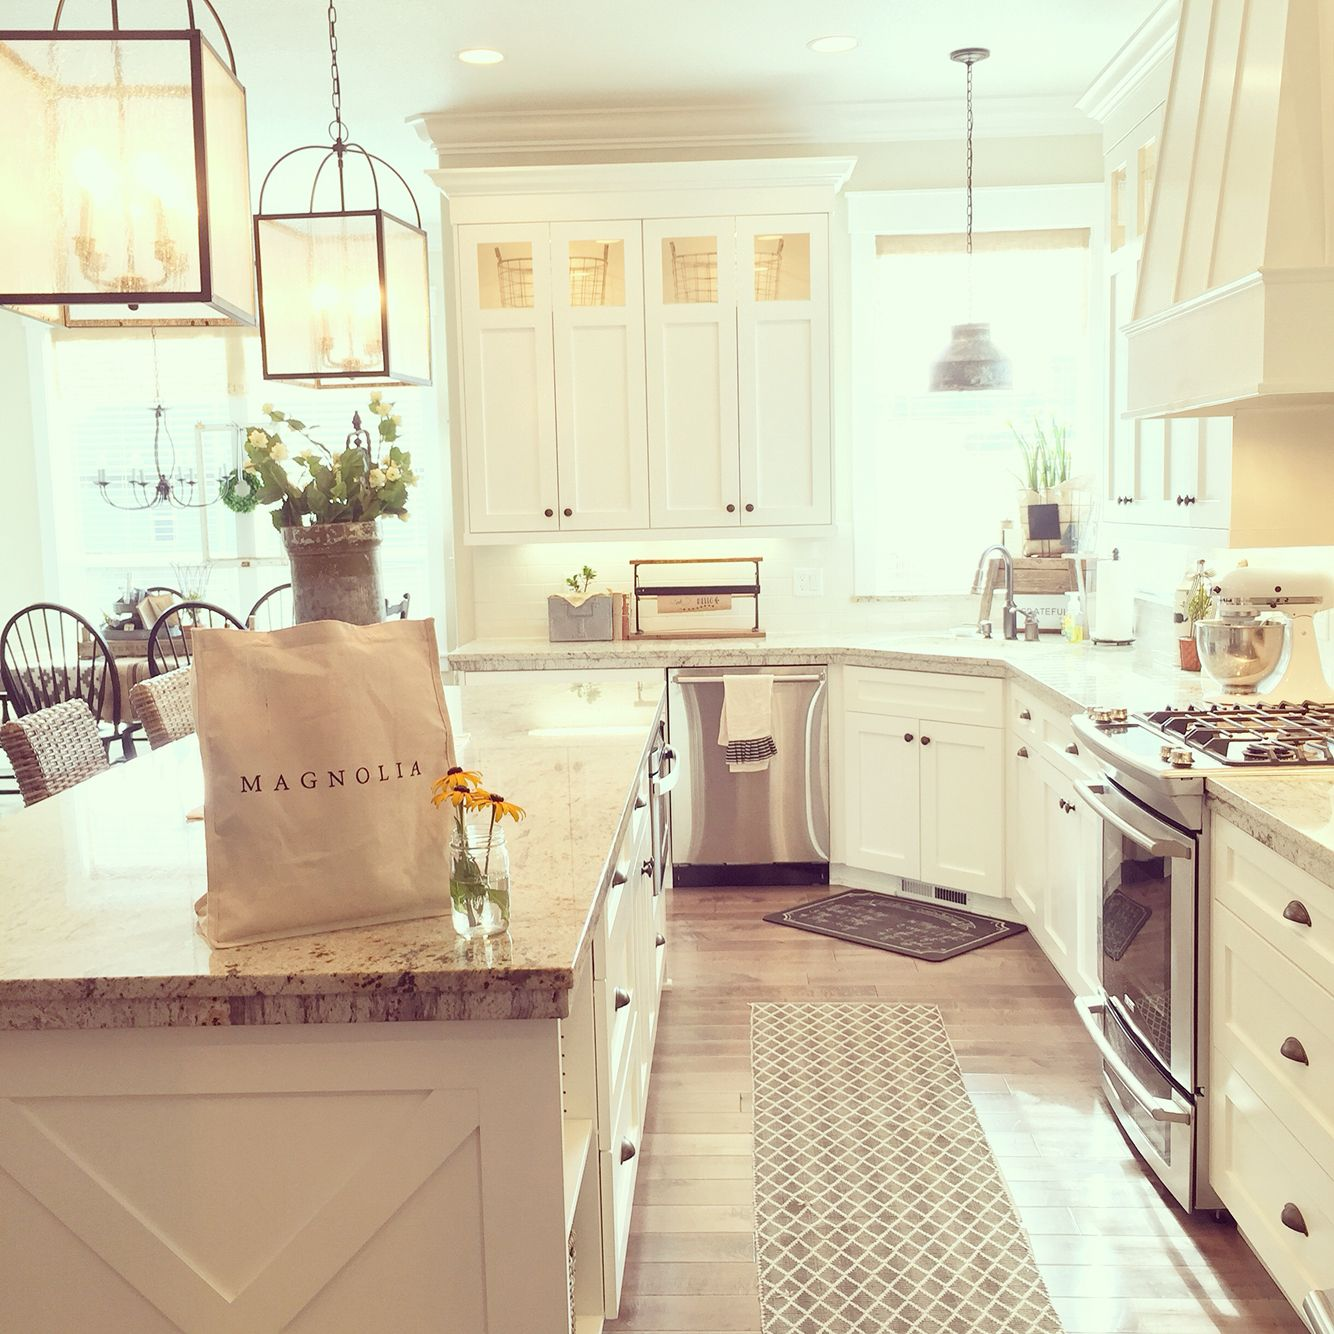 Imaginecozy Staging A Kitchen: Pin By Tanya Leslie On Cozy Home Decor